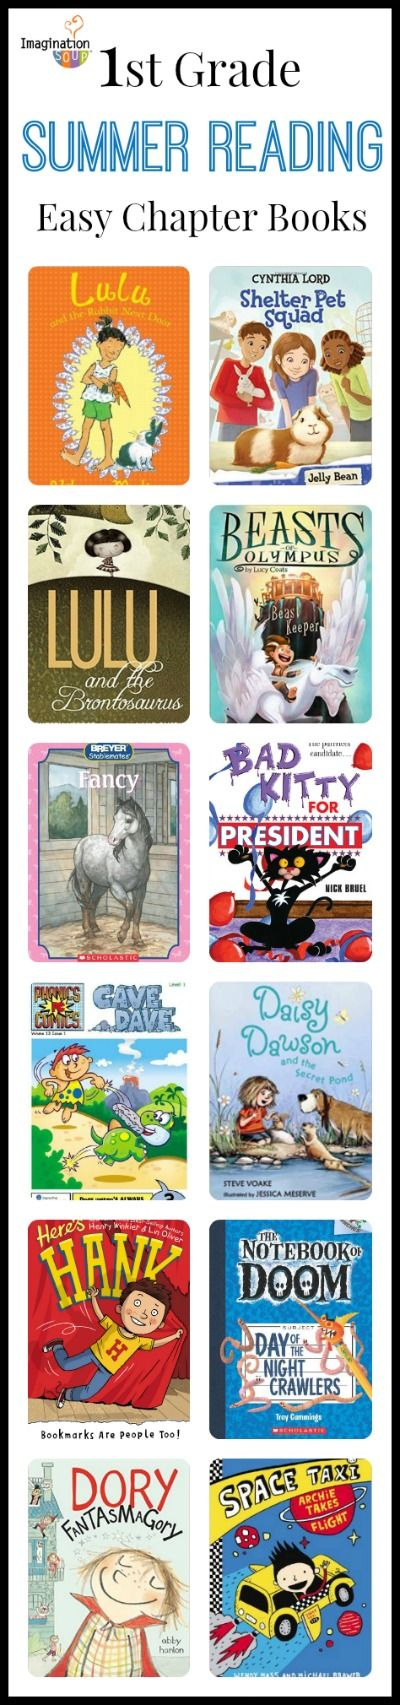 ordering books now! -- 1st grade summer reading list